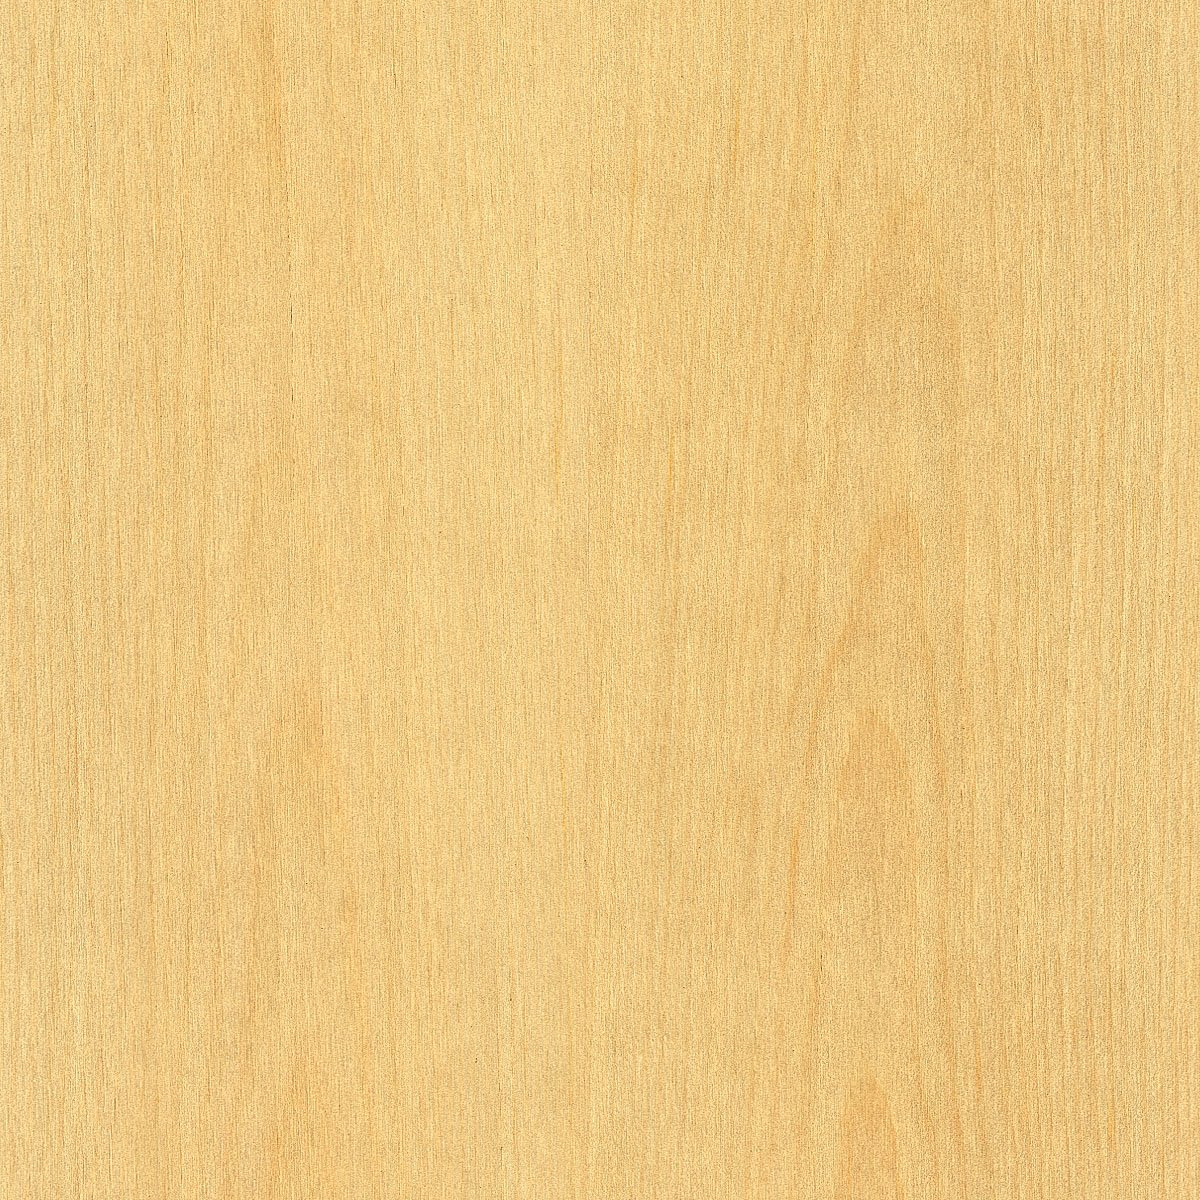 Pine Wood Veneer Clear 4x8 10 mil(Paperback) Sheet